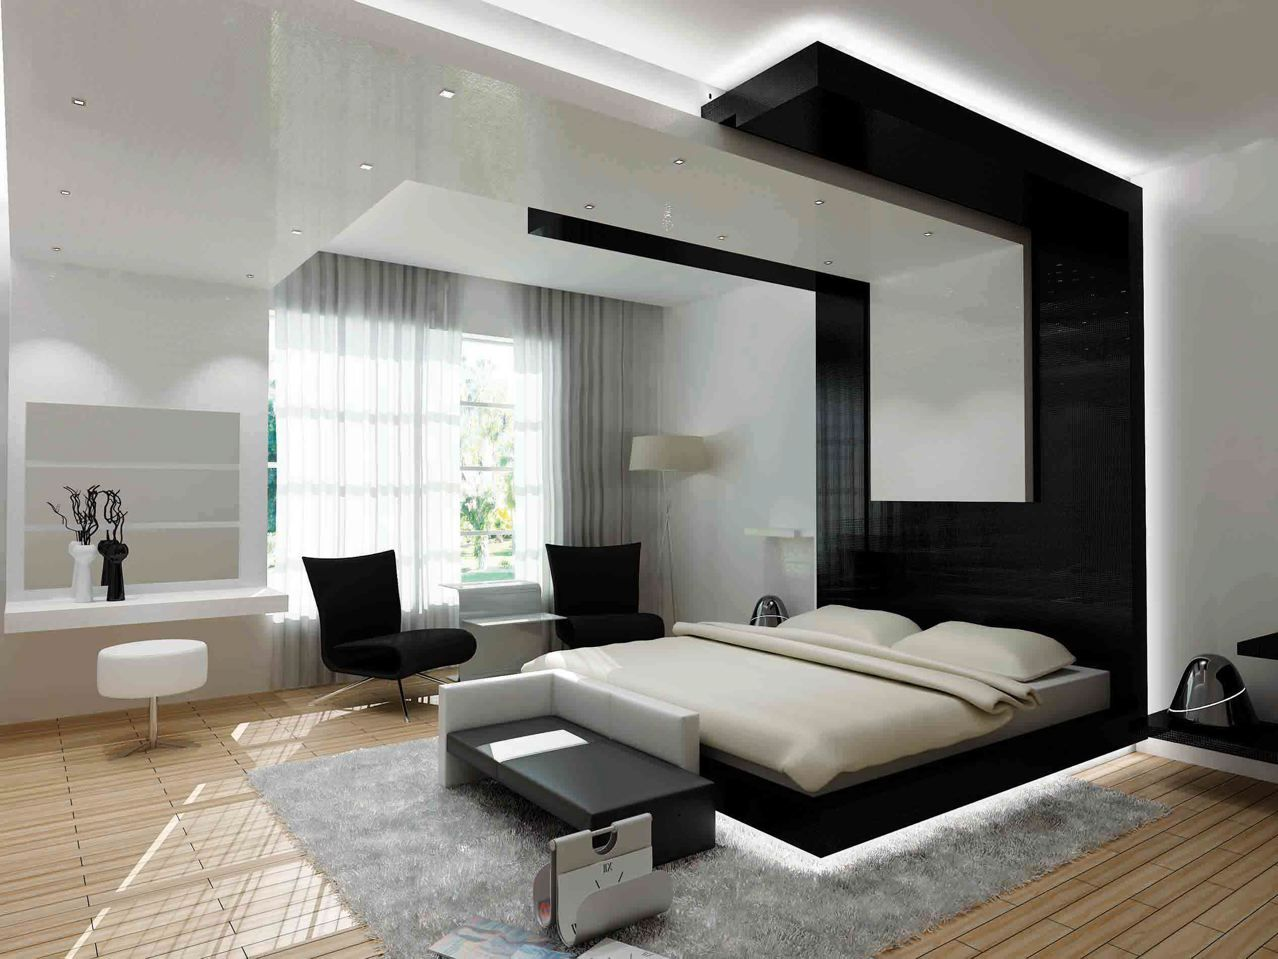 25 Best Modern Bedroom Designs White Bedroom Design Contemporary Bedroom Design Cozy Bedroom Design